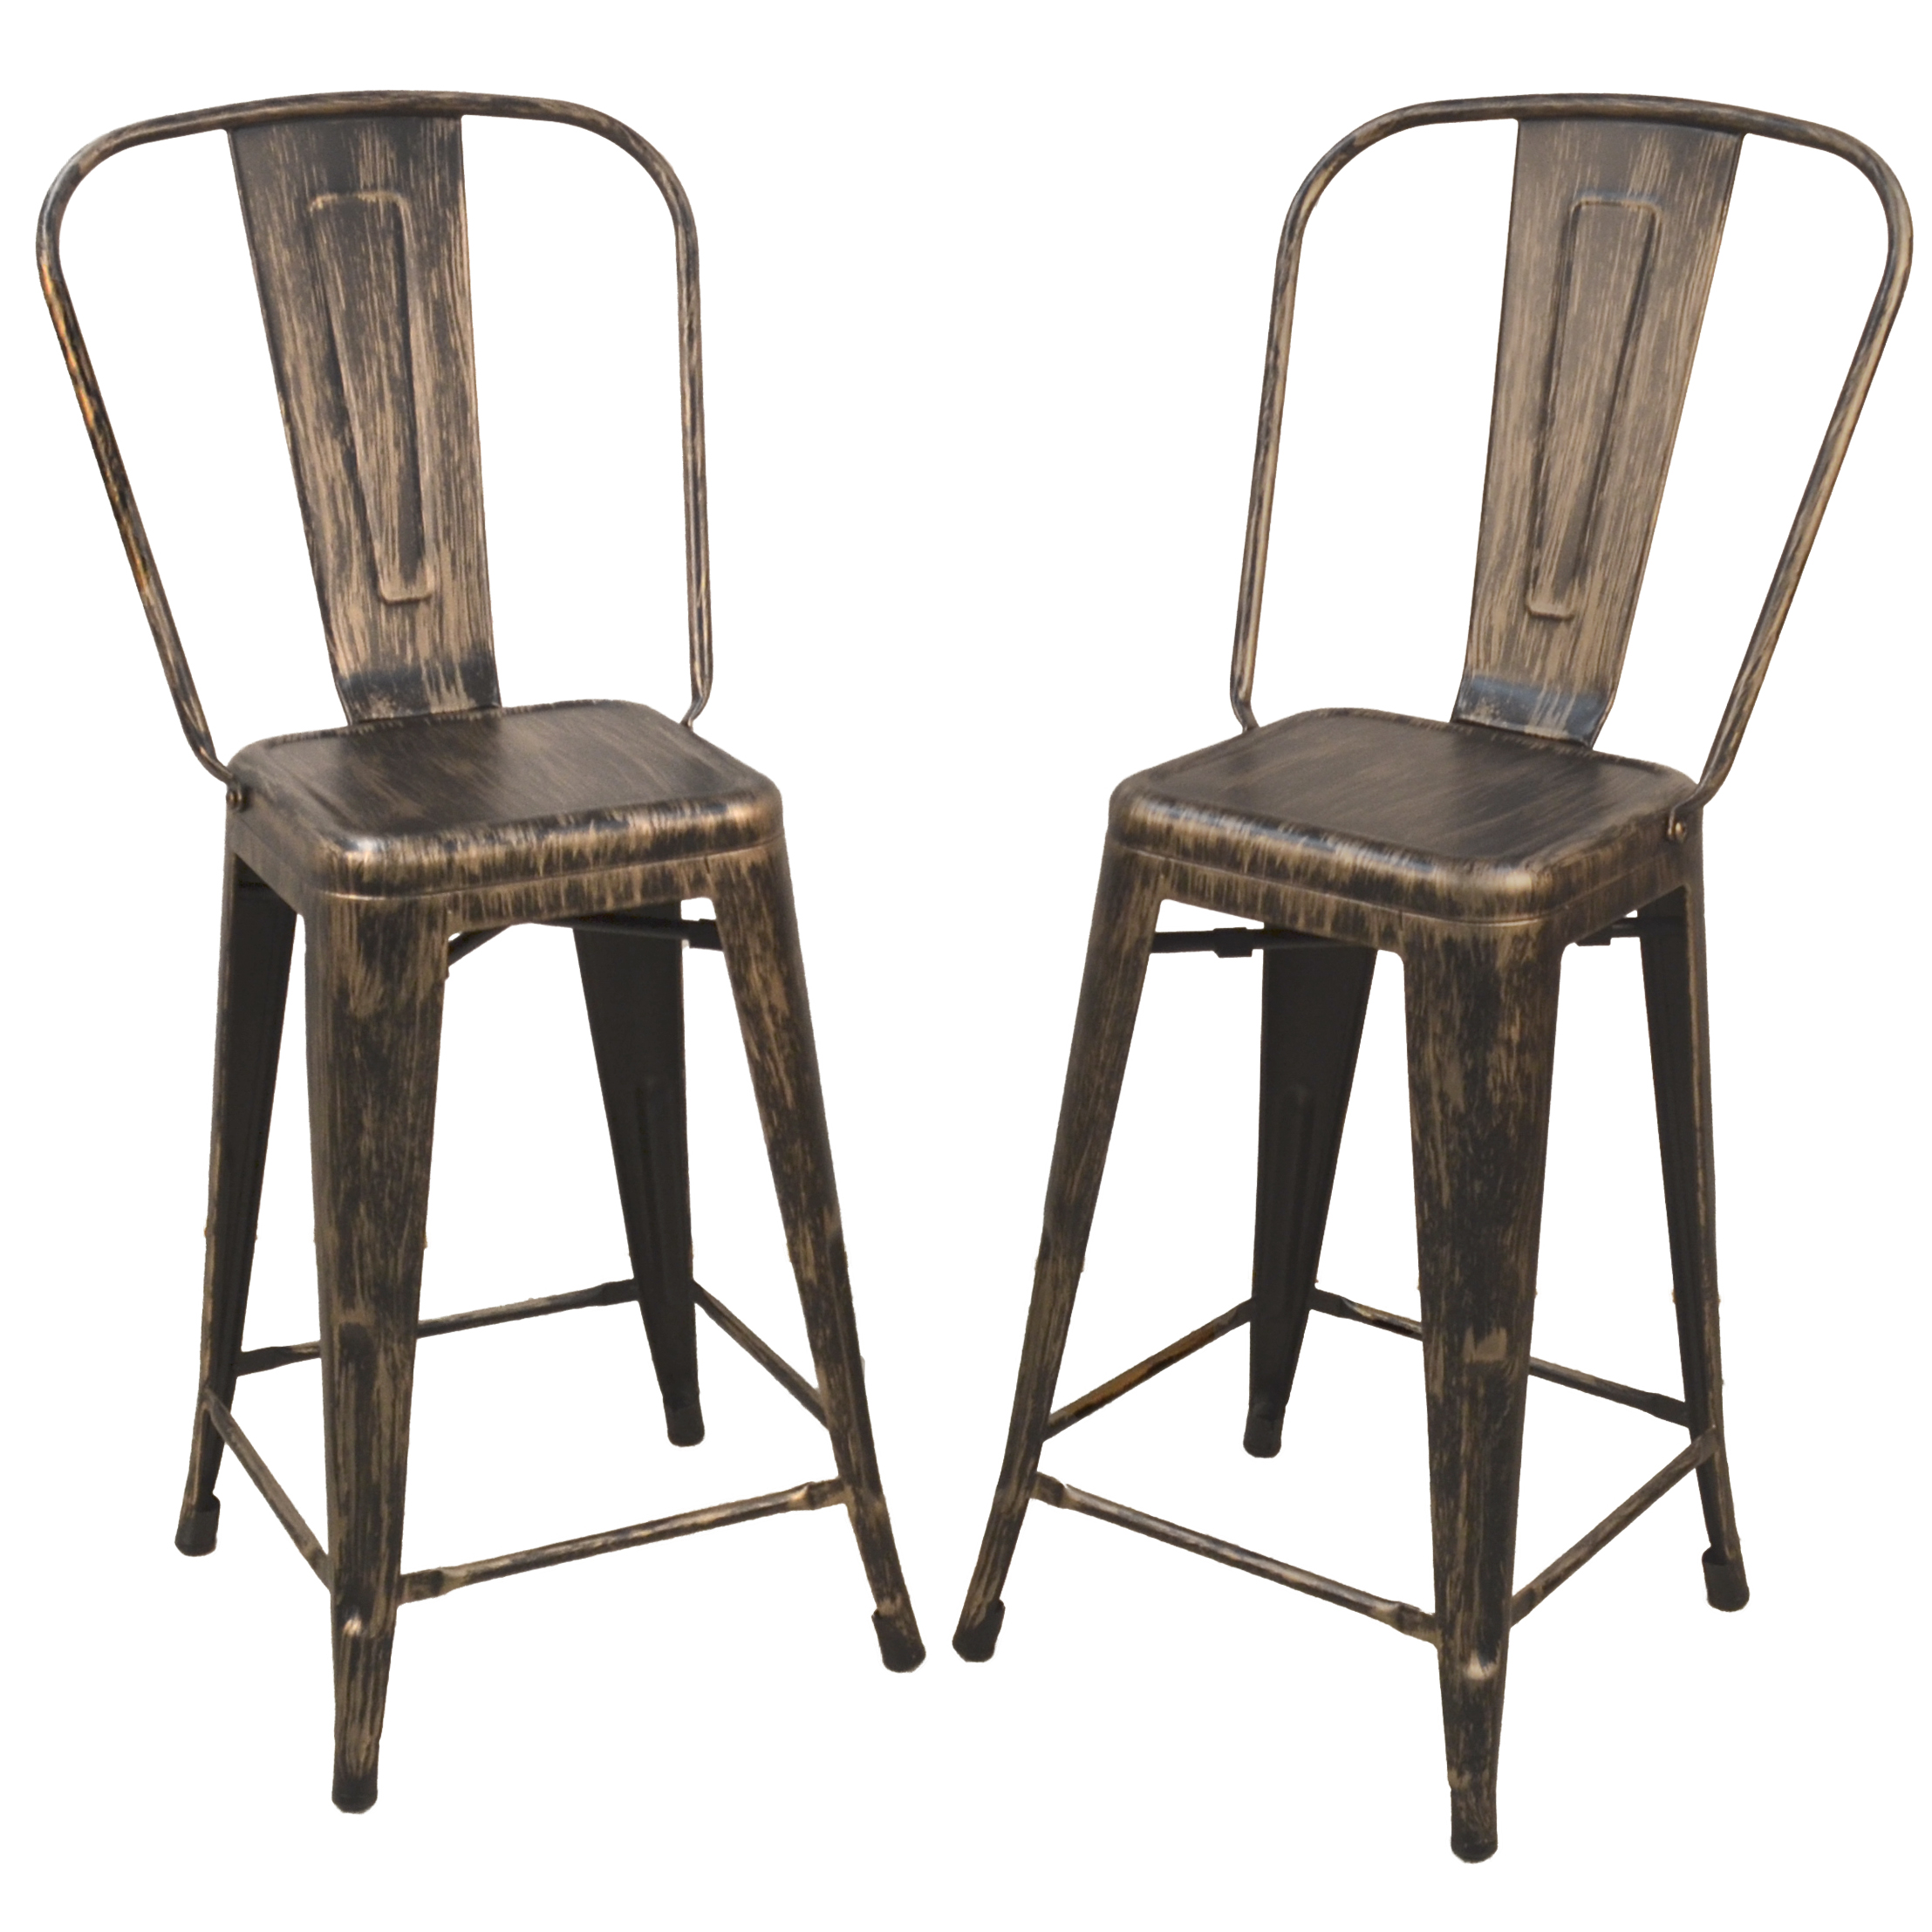 "Adeline 24"" Counter Stool Set of 2, Antique Copper"